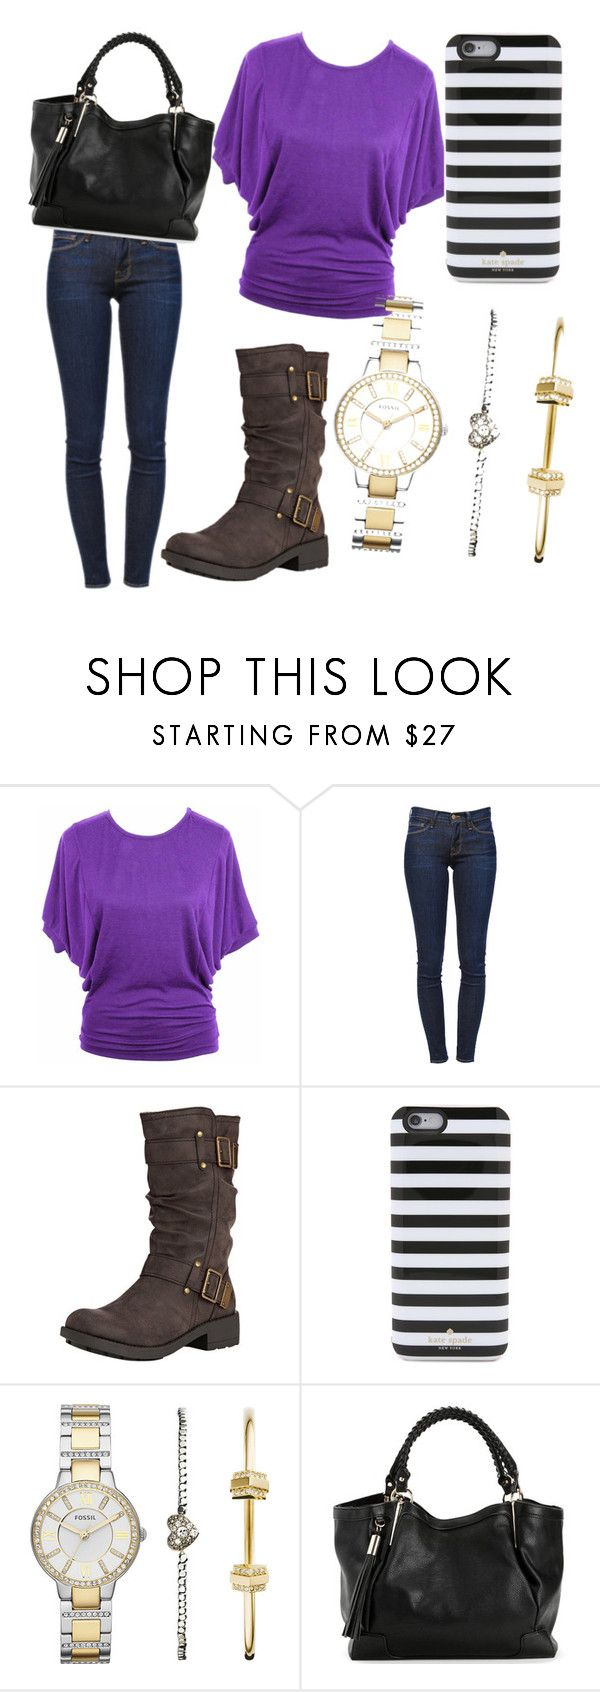 """""""casual"""" by filipaandreia88 ❤ liked on Polyvore featuring Frame, Rocket Dog, Kate Spade and FOSSIL"""